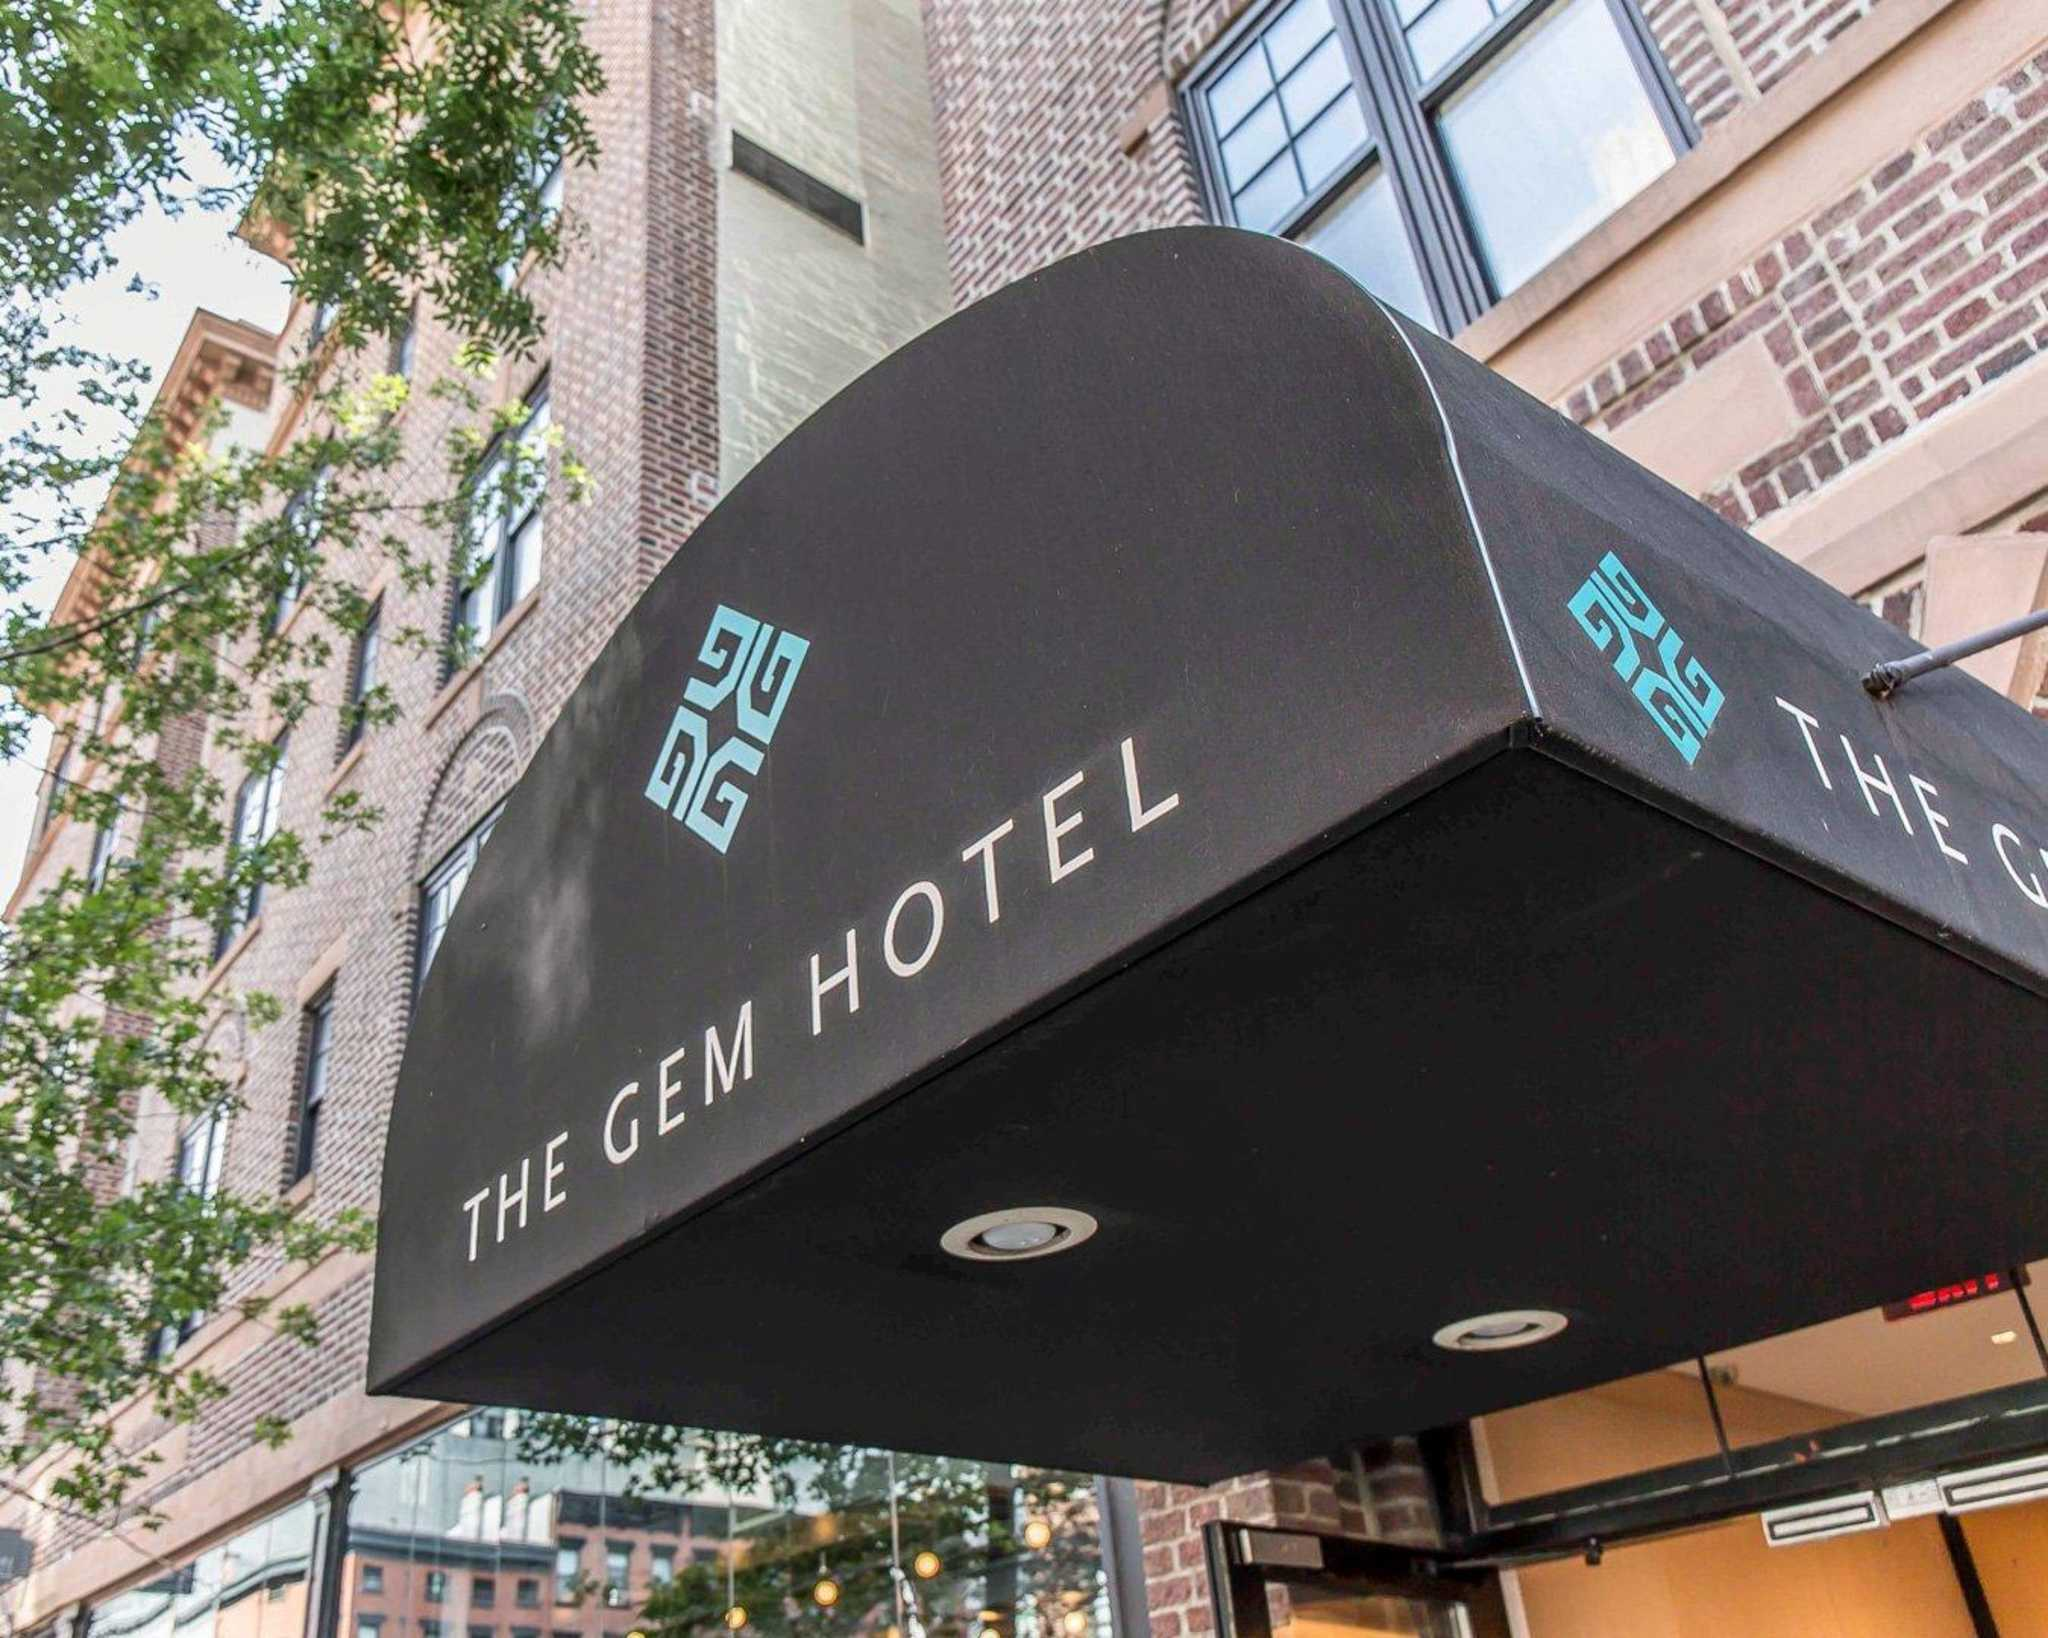 GEM Hotel - Chelsea, an Ascend Hotel Collection Member image 1